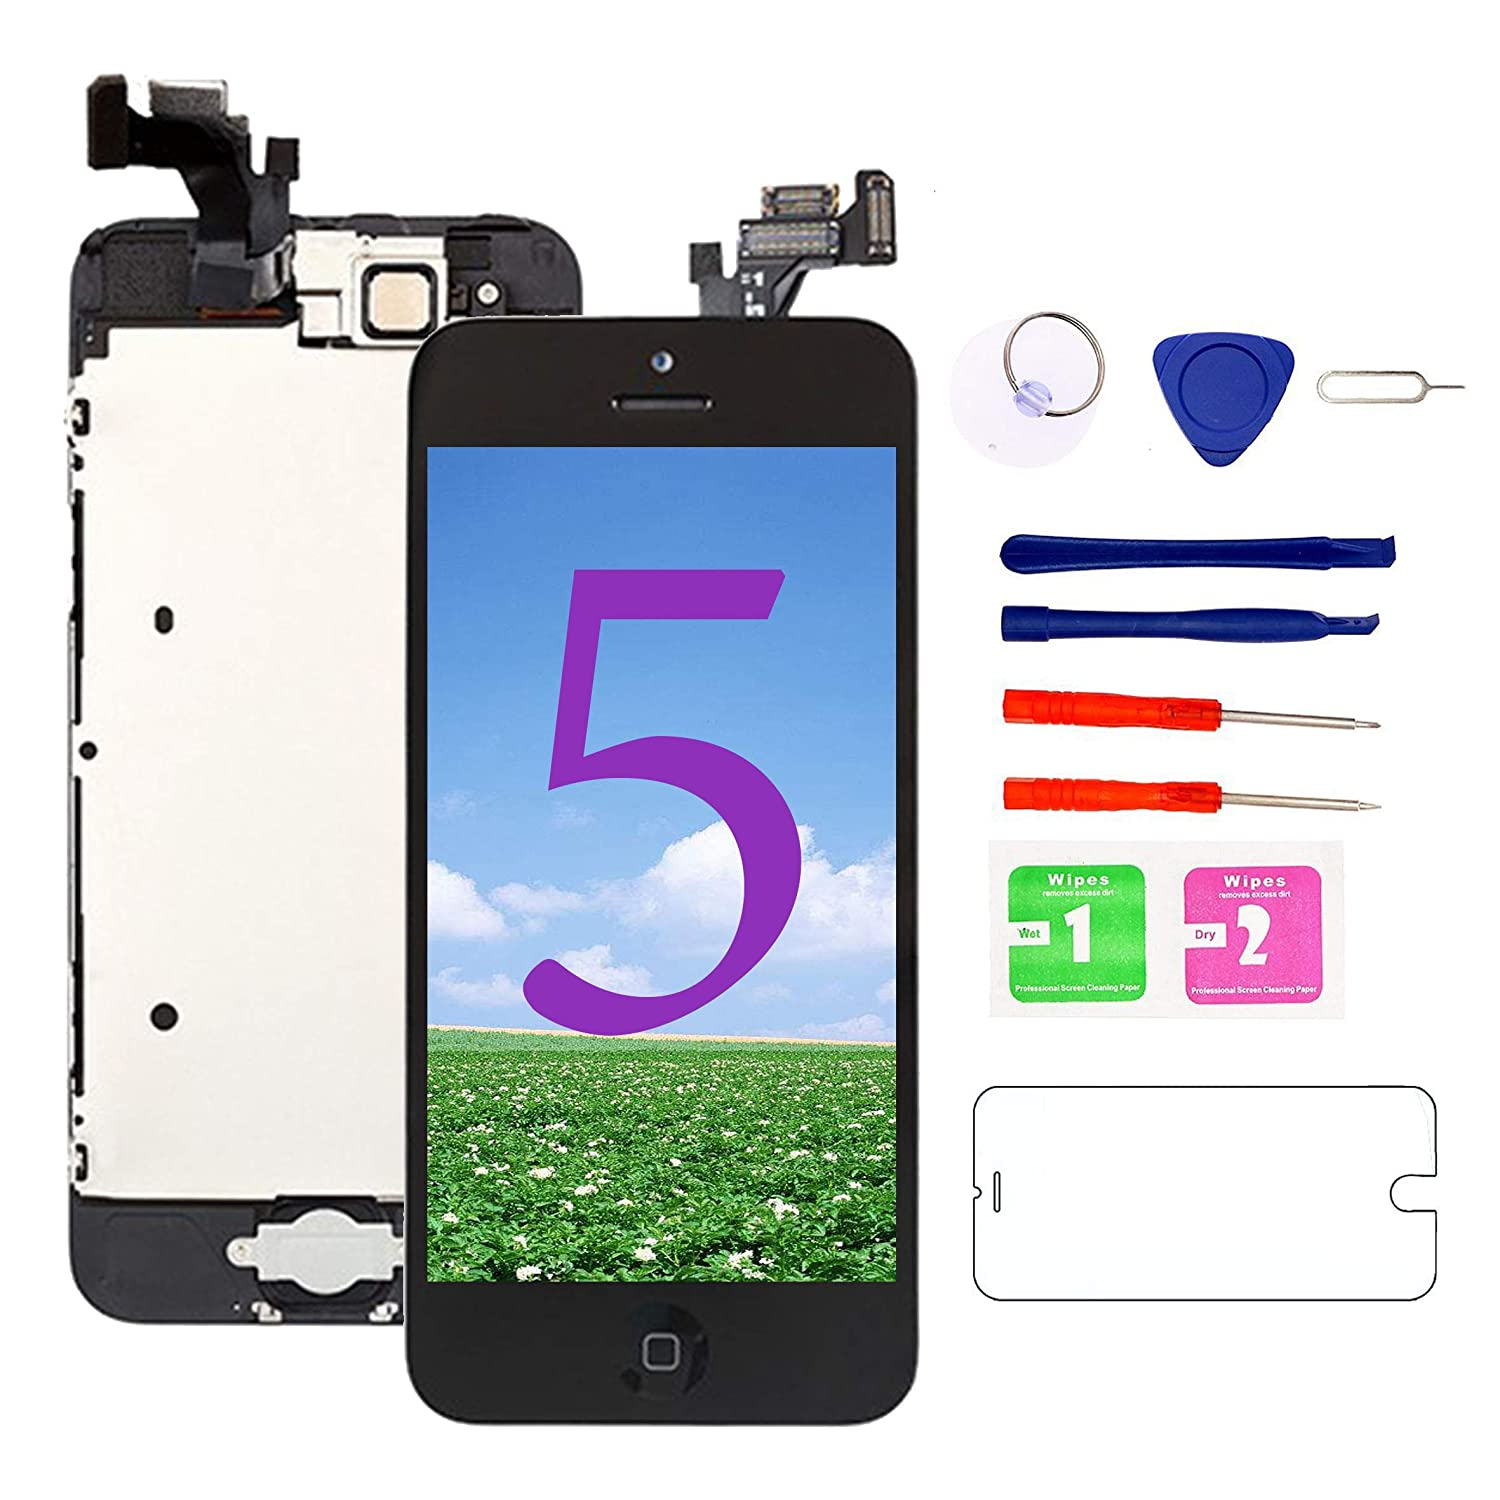 Nroech for iPhone 5C Screen Replacement Black with Home Button and Camera Full Assembly - 5C LCD Display Touch Digitizer - Repair Tools Kit and Tempered Glass Screen Protector